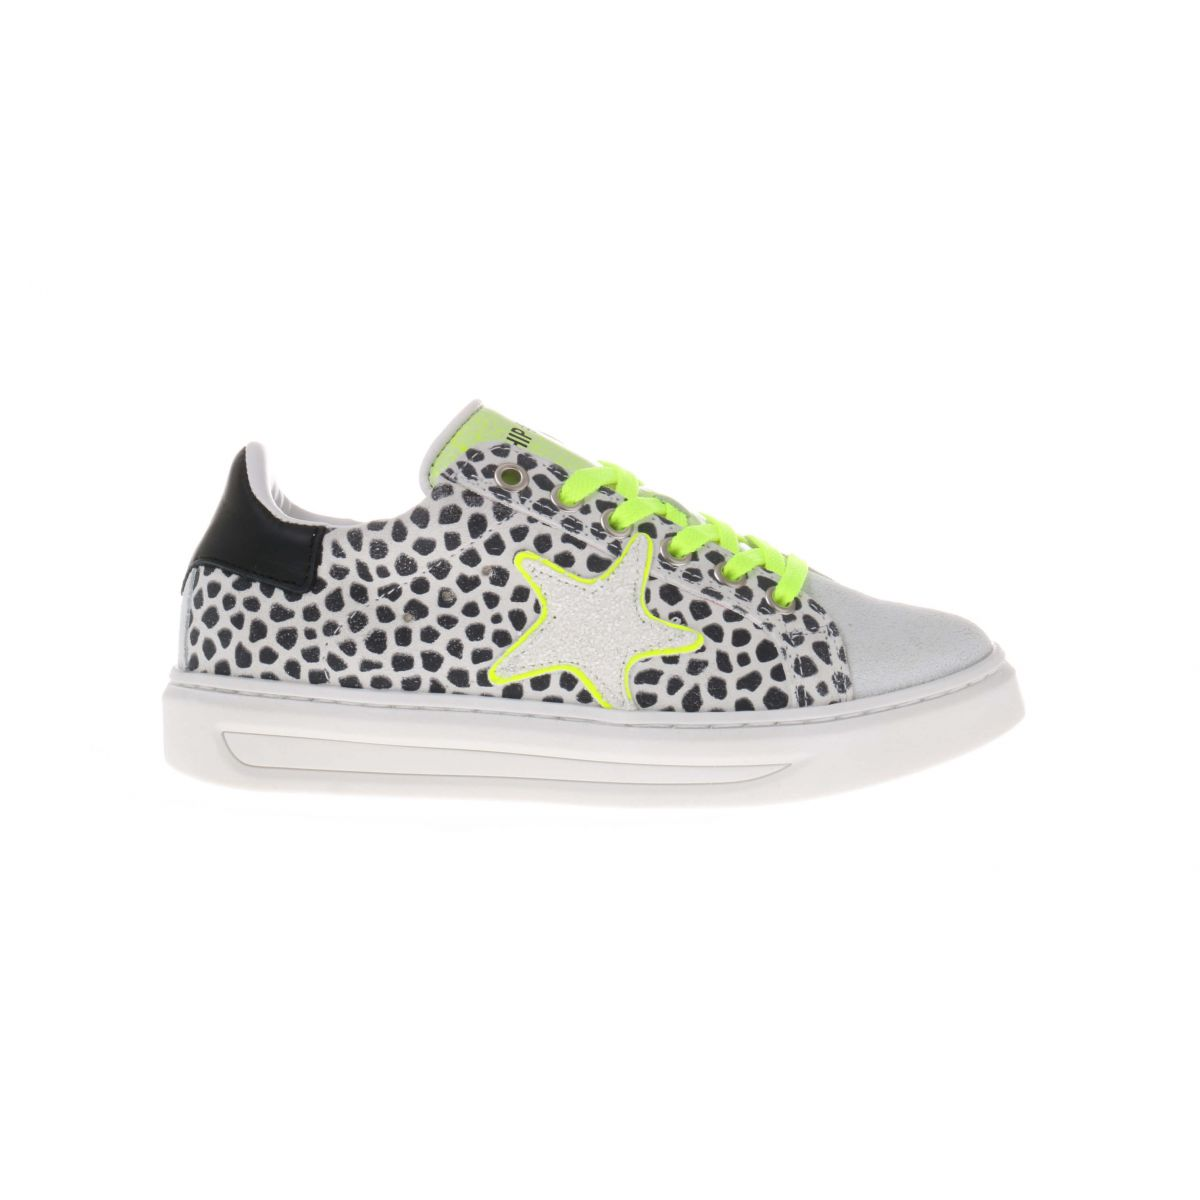 HIP H1790 Sneakers Zwart-Wit Giraffe